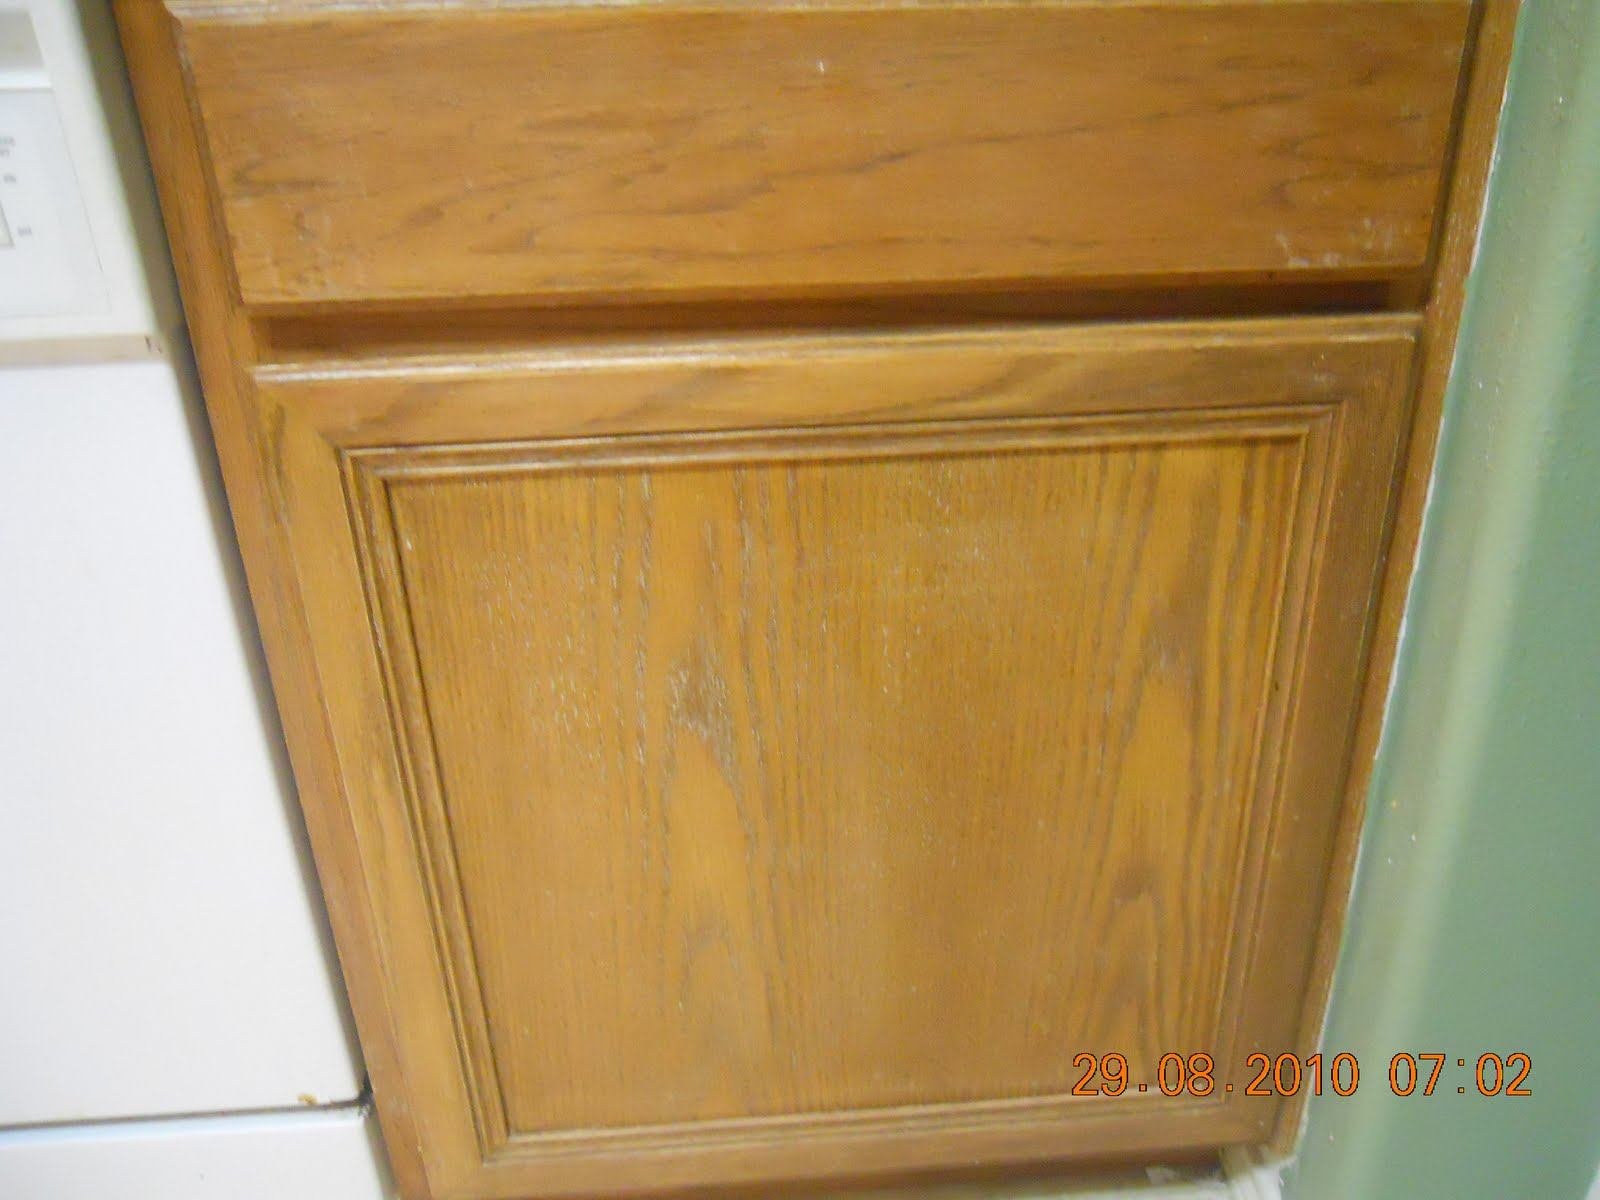 cabinets for quite some time but hadn't really thought about painting